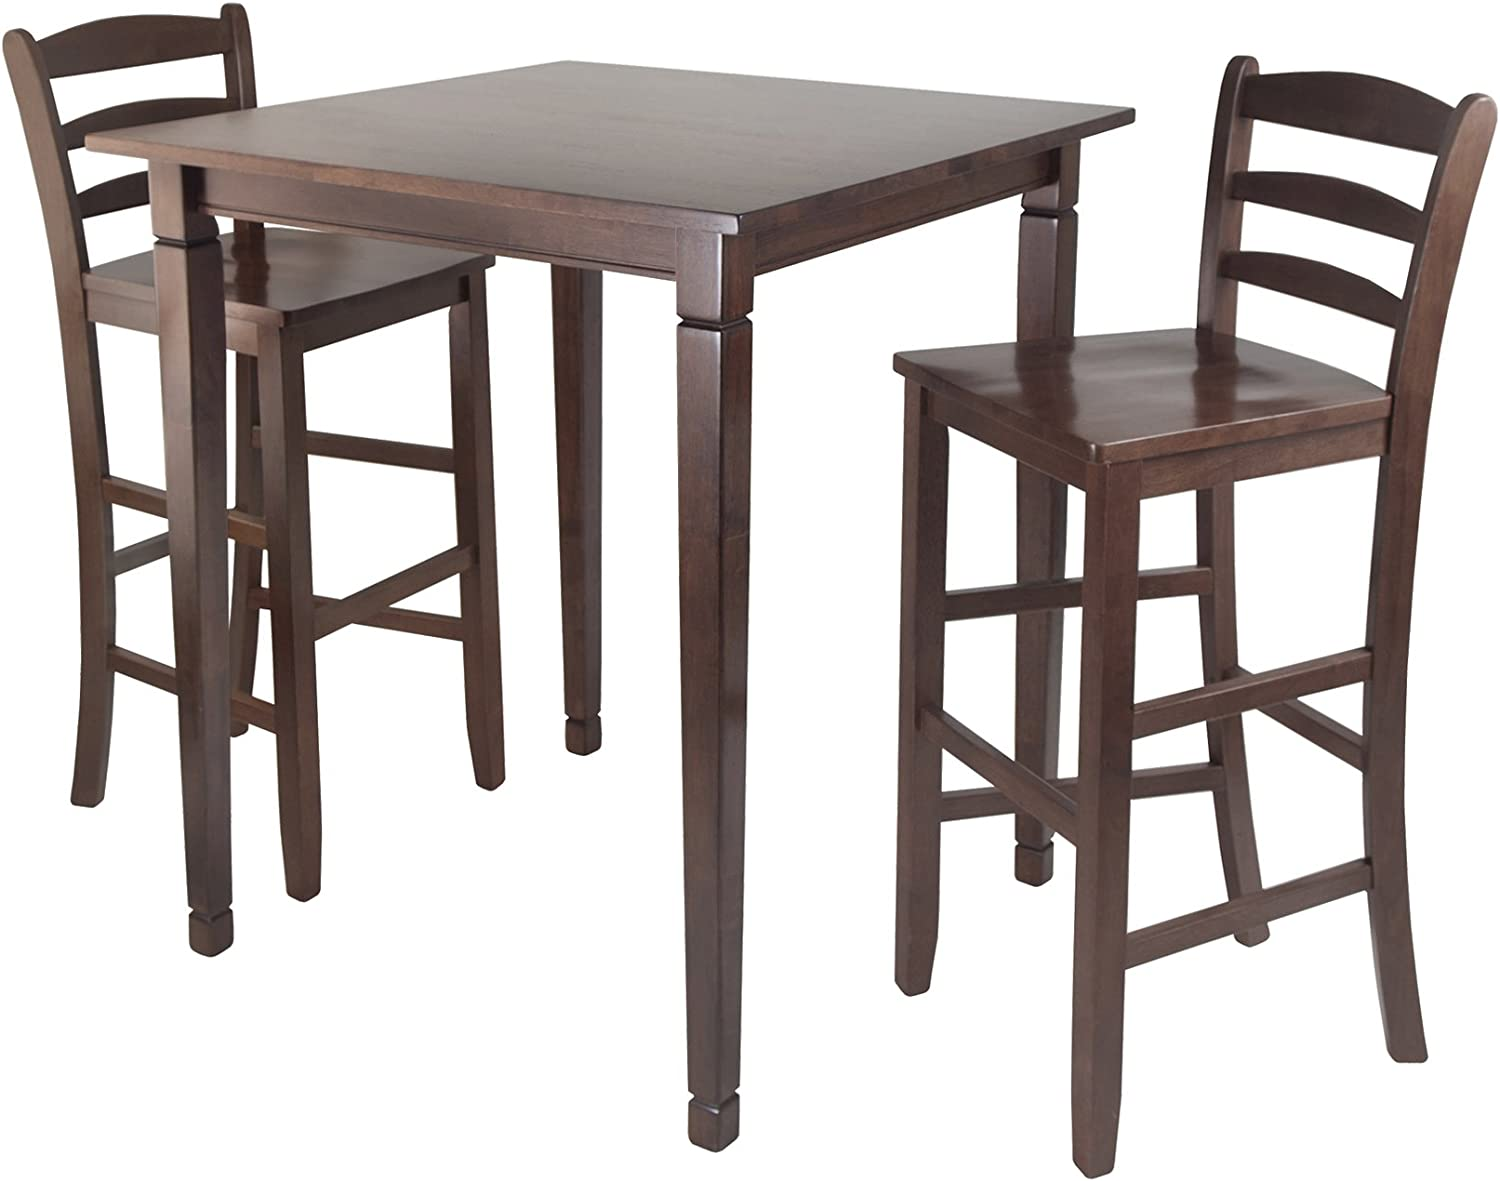 Winsome Kingsgate High/Pub Dining Table with Ladder Back High Chair, 8-Piece